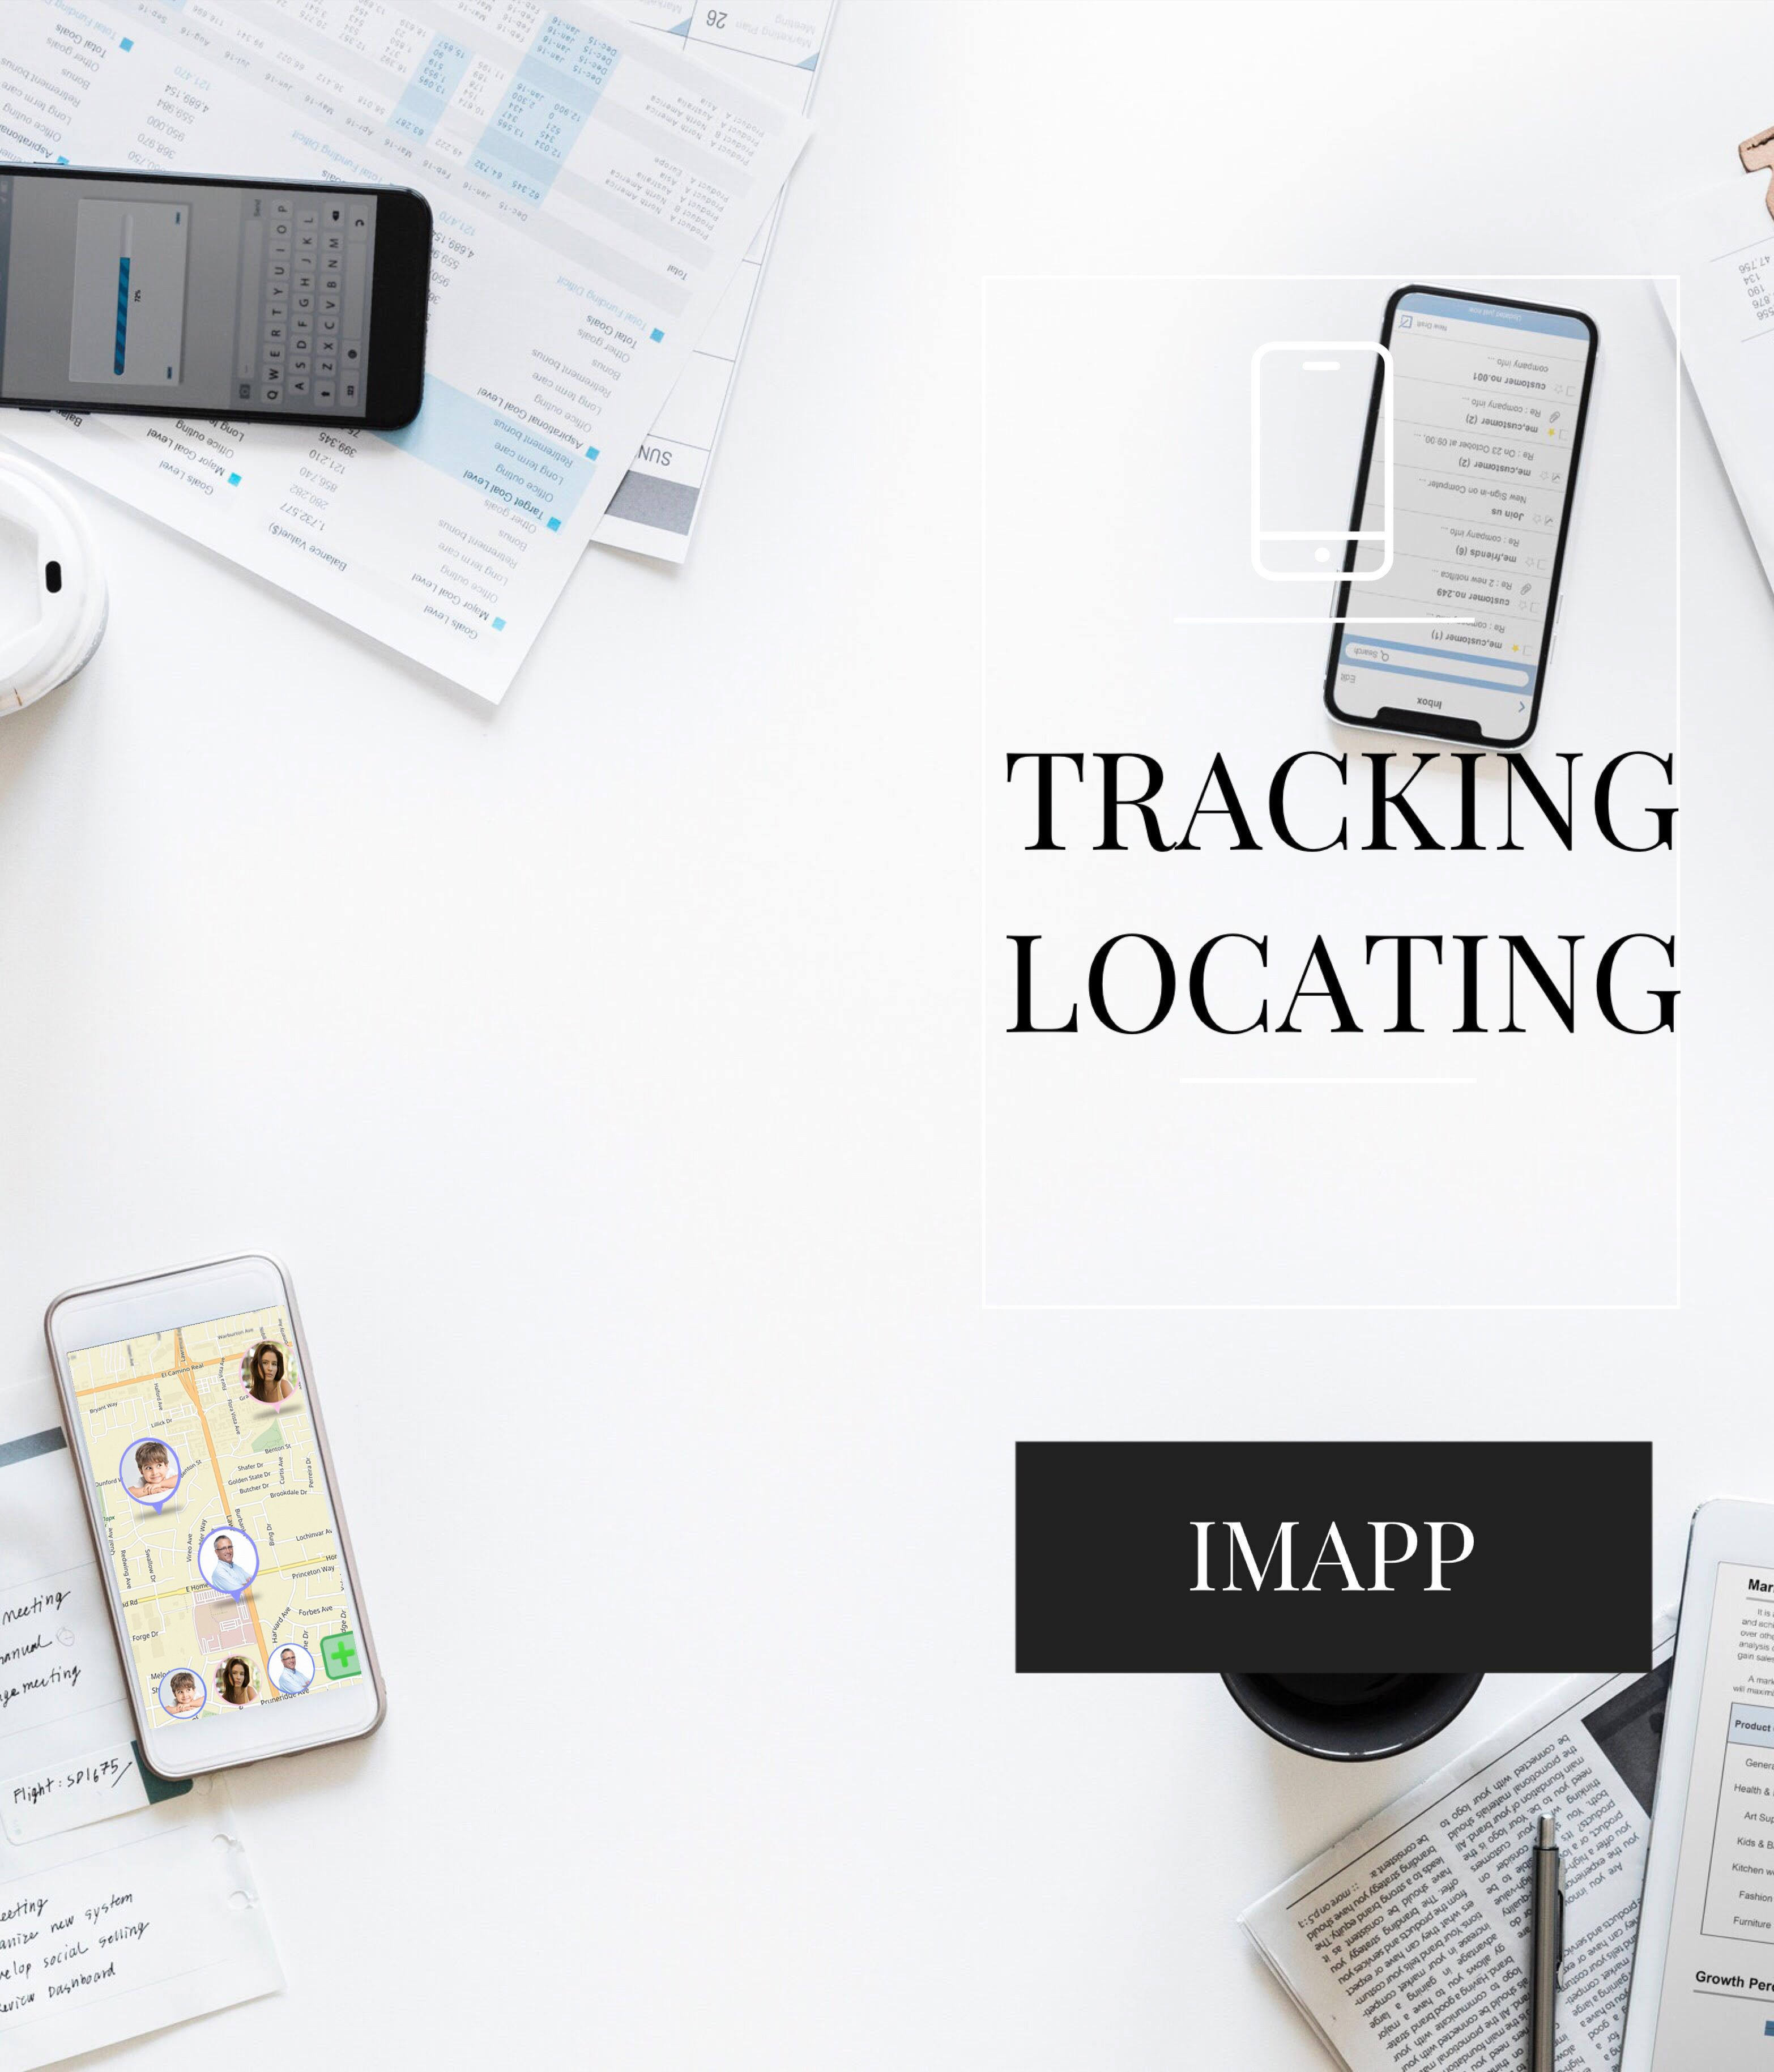 Imap is best location sharing and location finder